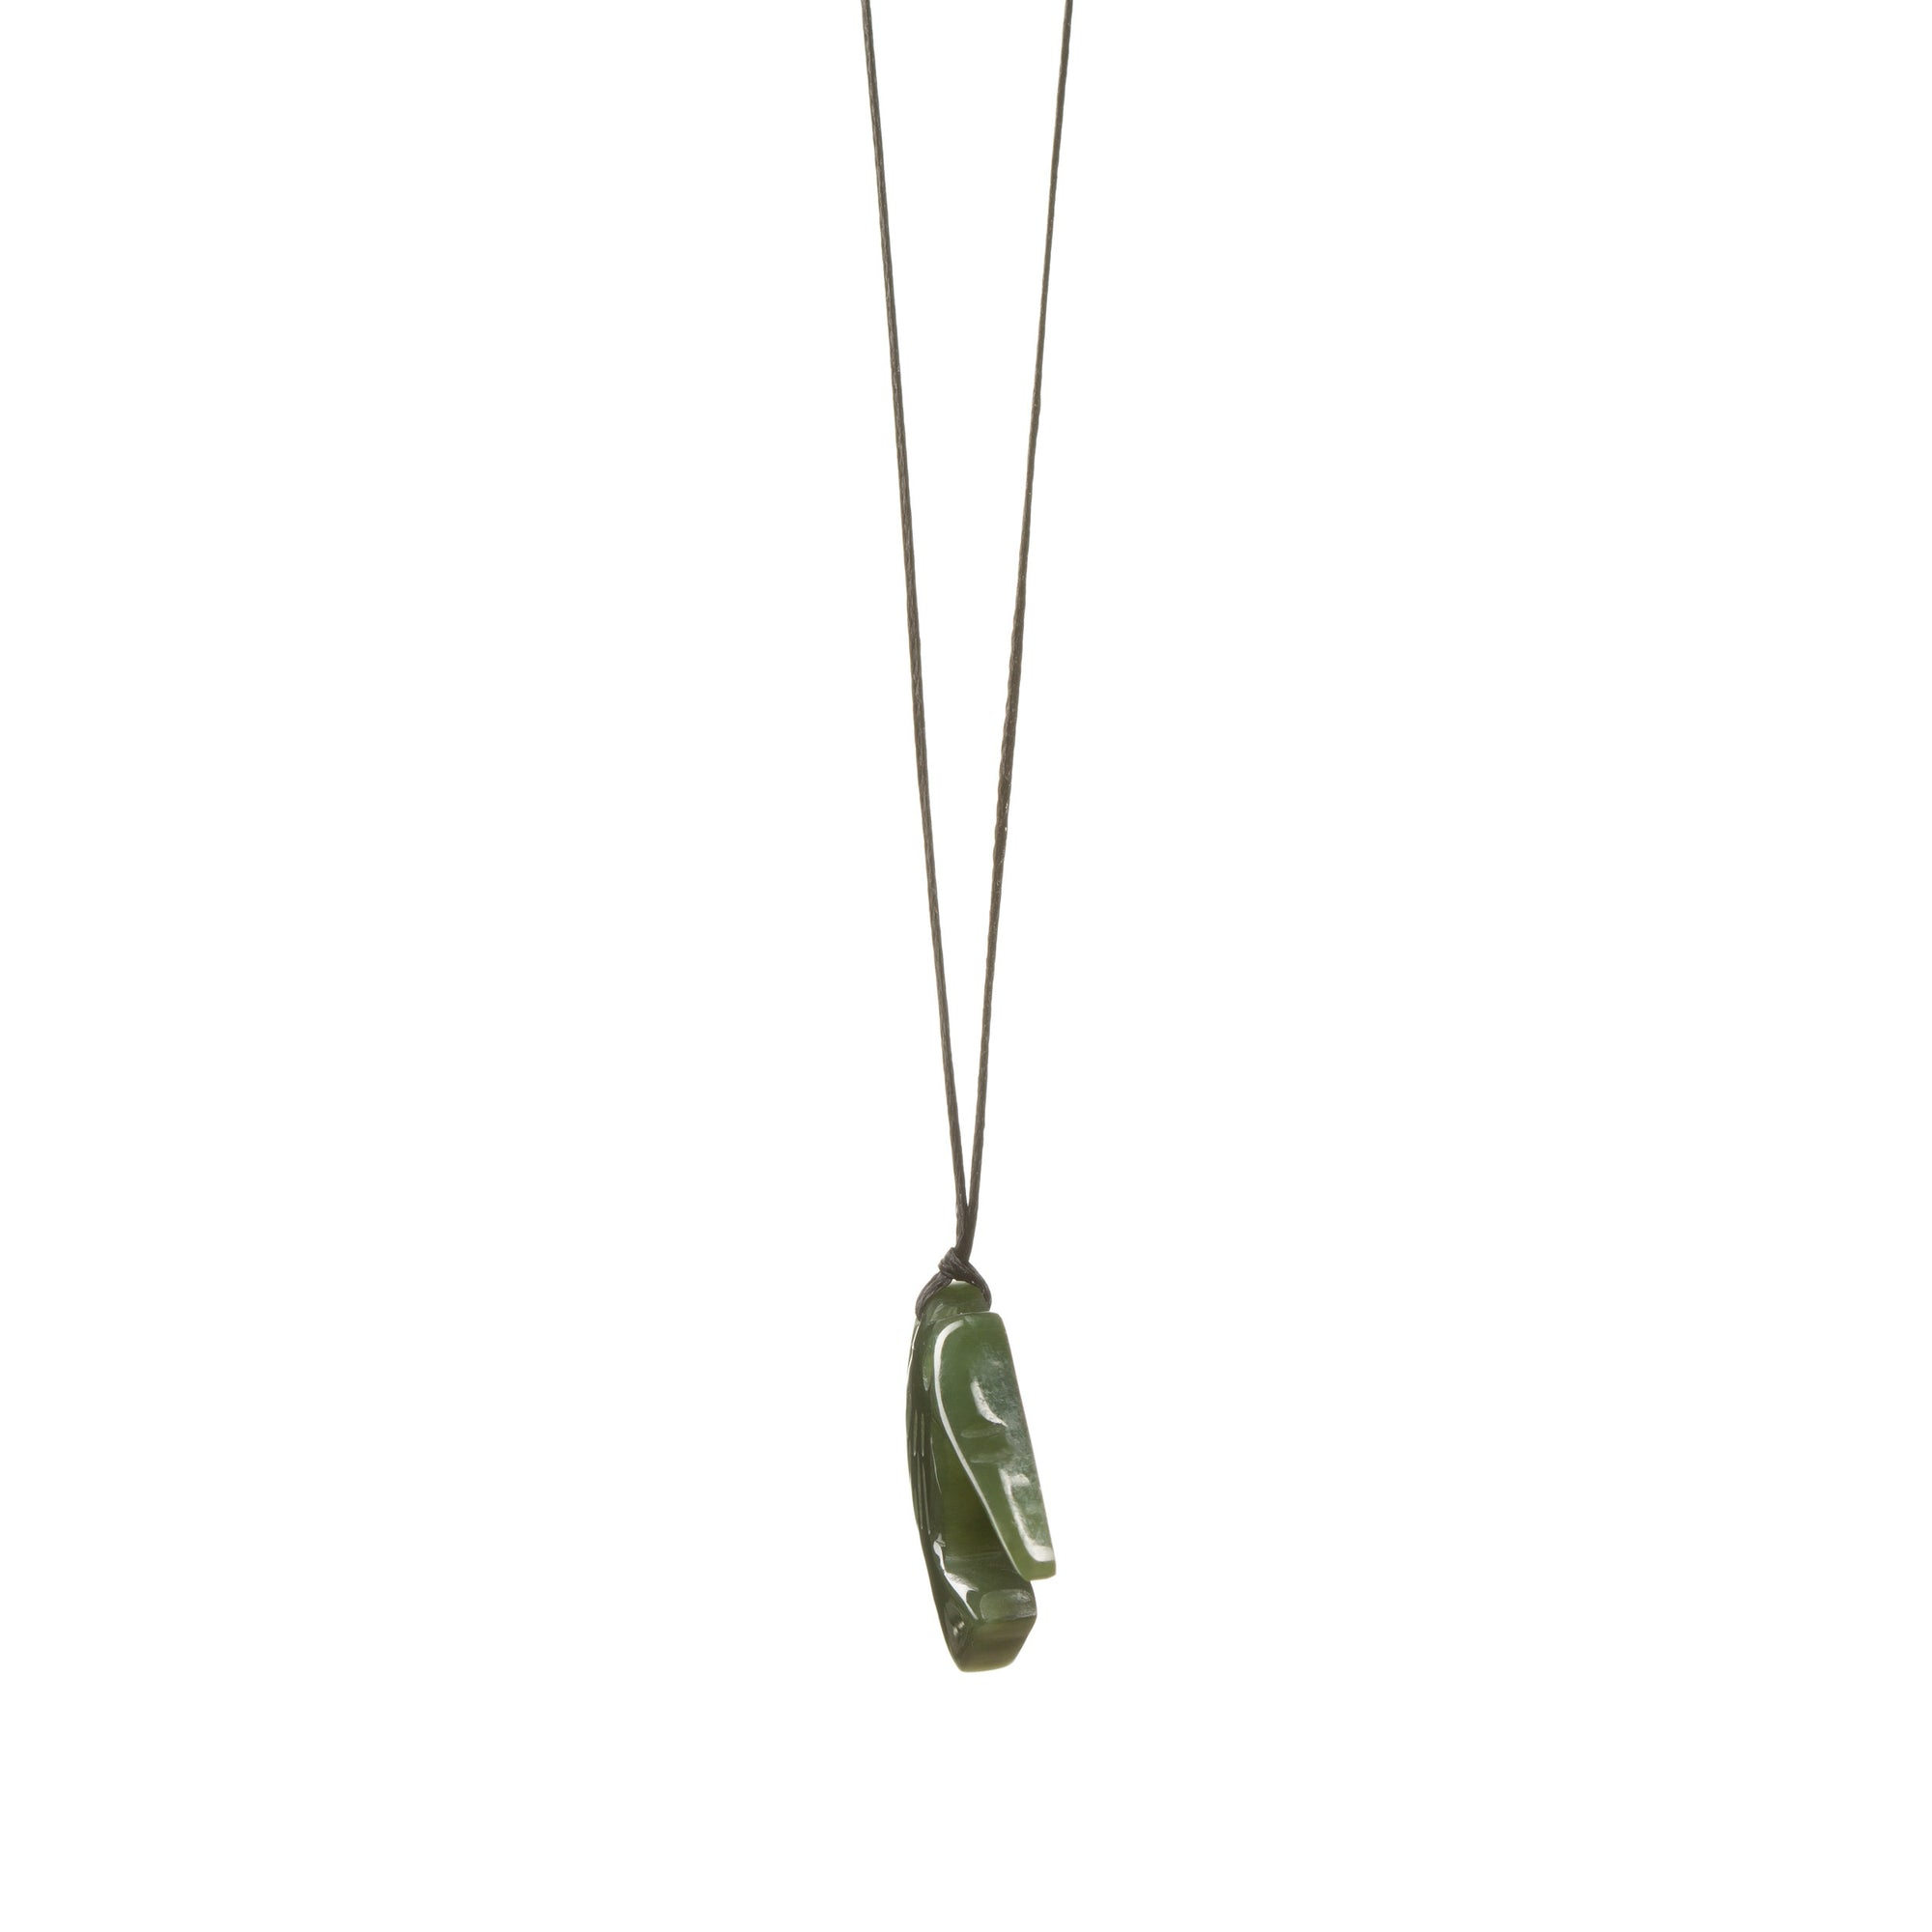 Canadian Jade Kiwi Bird Necklace